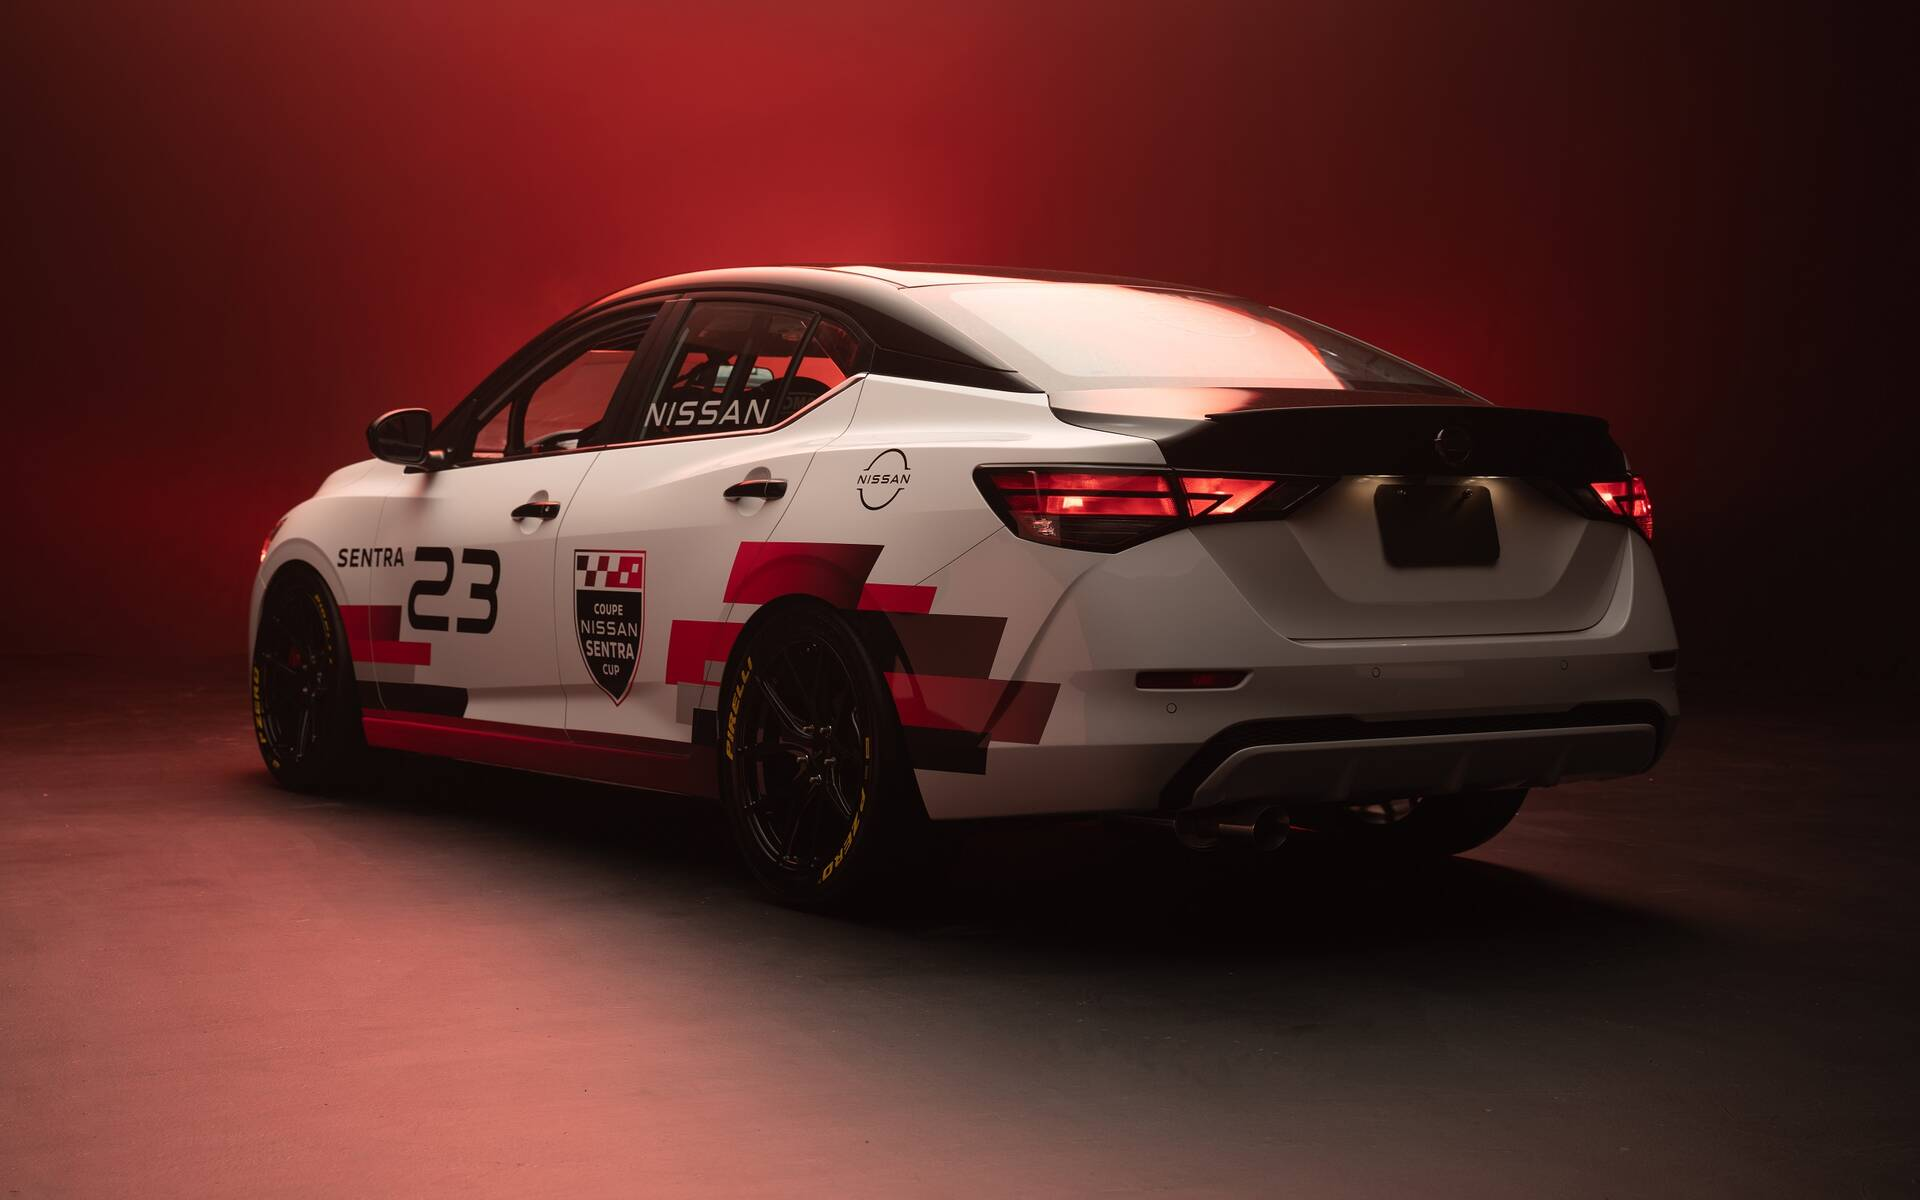 Nissan Sentra Cup To Follow In Micra S Footsteps The Car Guide Here's what you need to know, including performance specs, driving impressions, features, technology and fuel economy. nissan sentra cup to follow in micra s